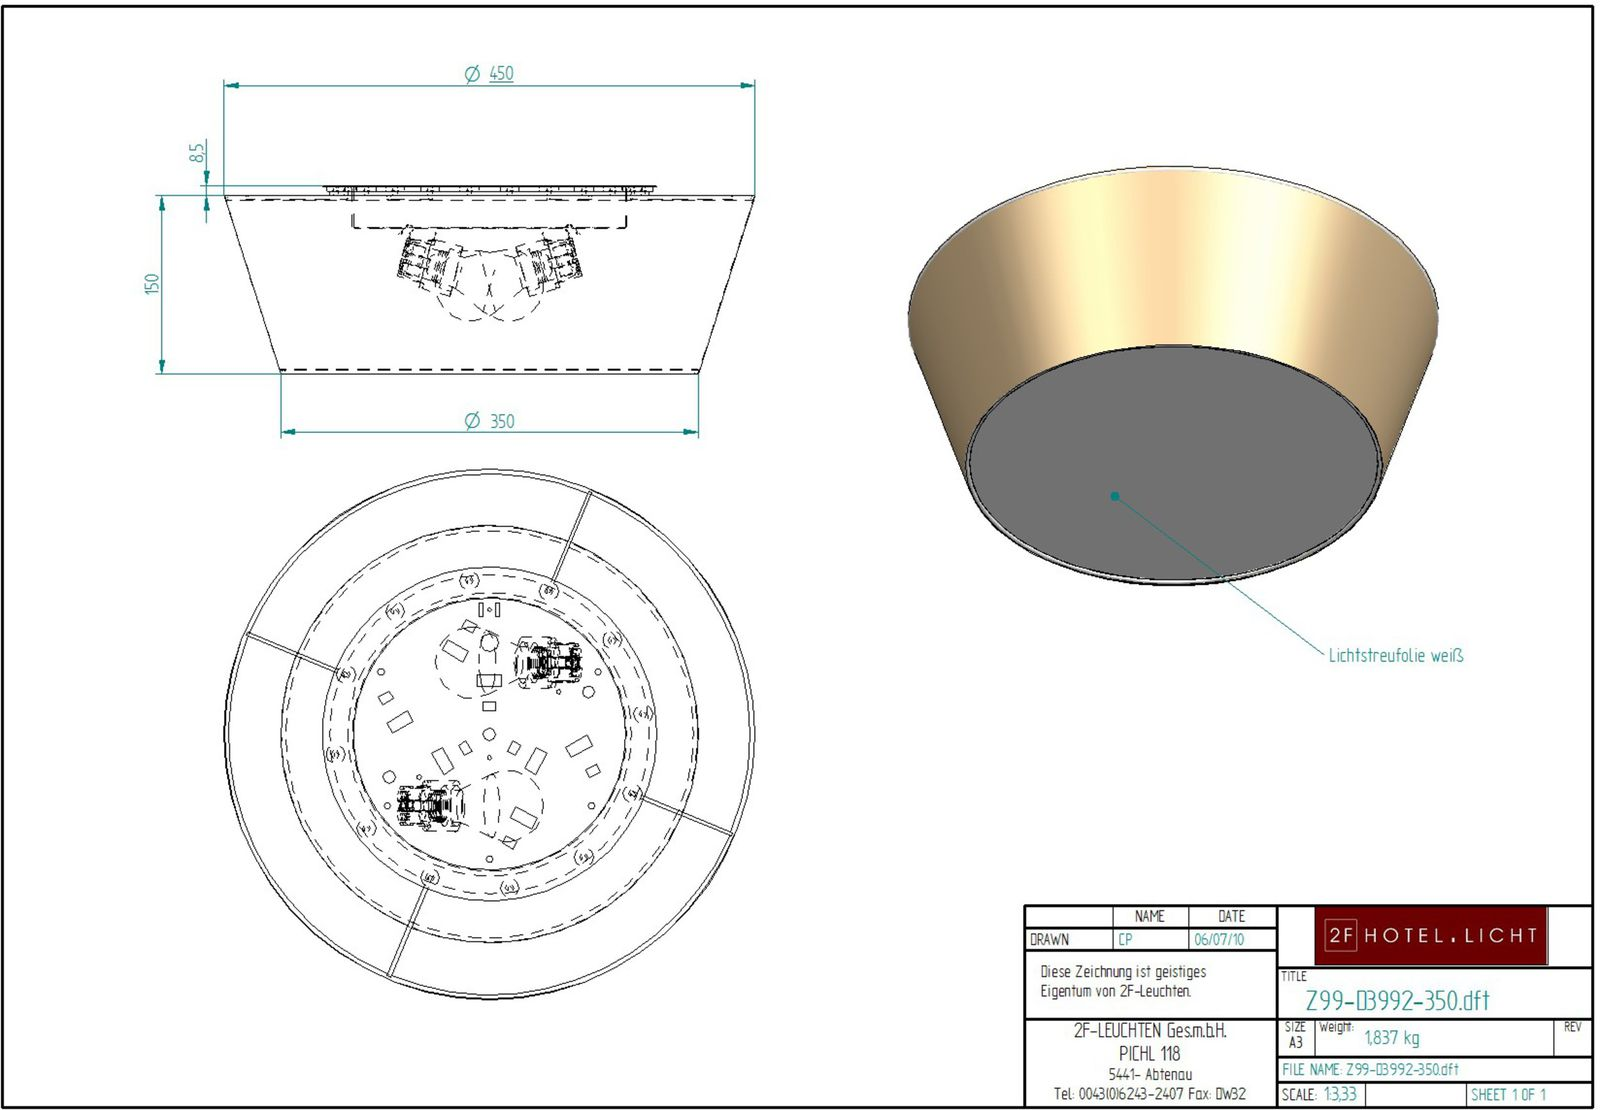 ceiling lamp, diameter= 350x450mm, height=150mm, technical details: 2xE27, 60W